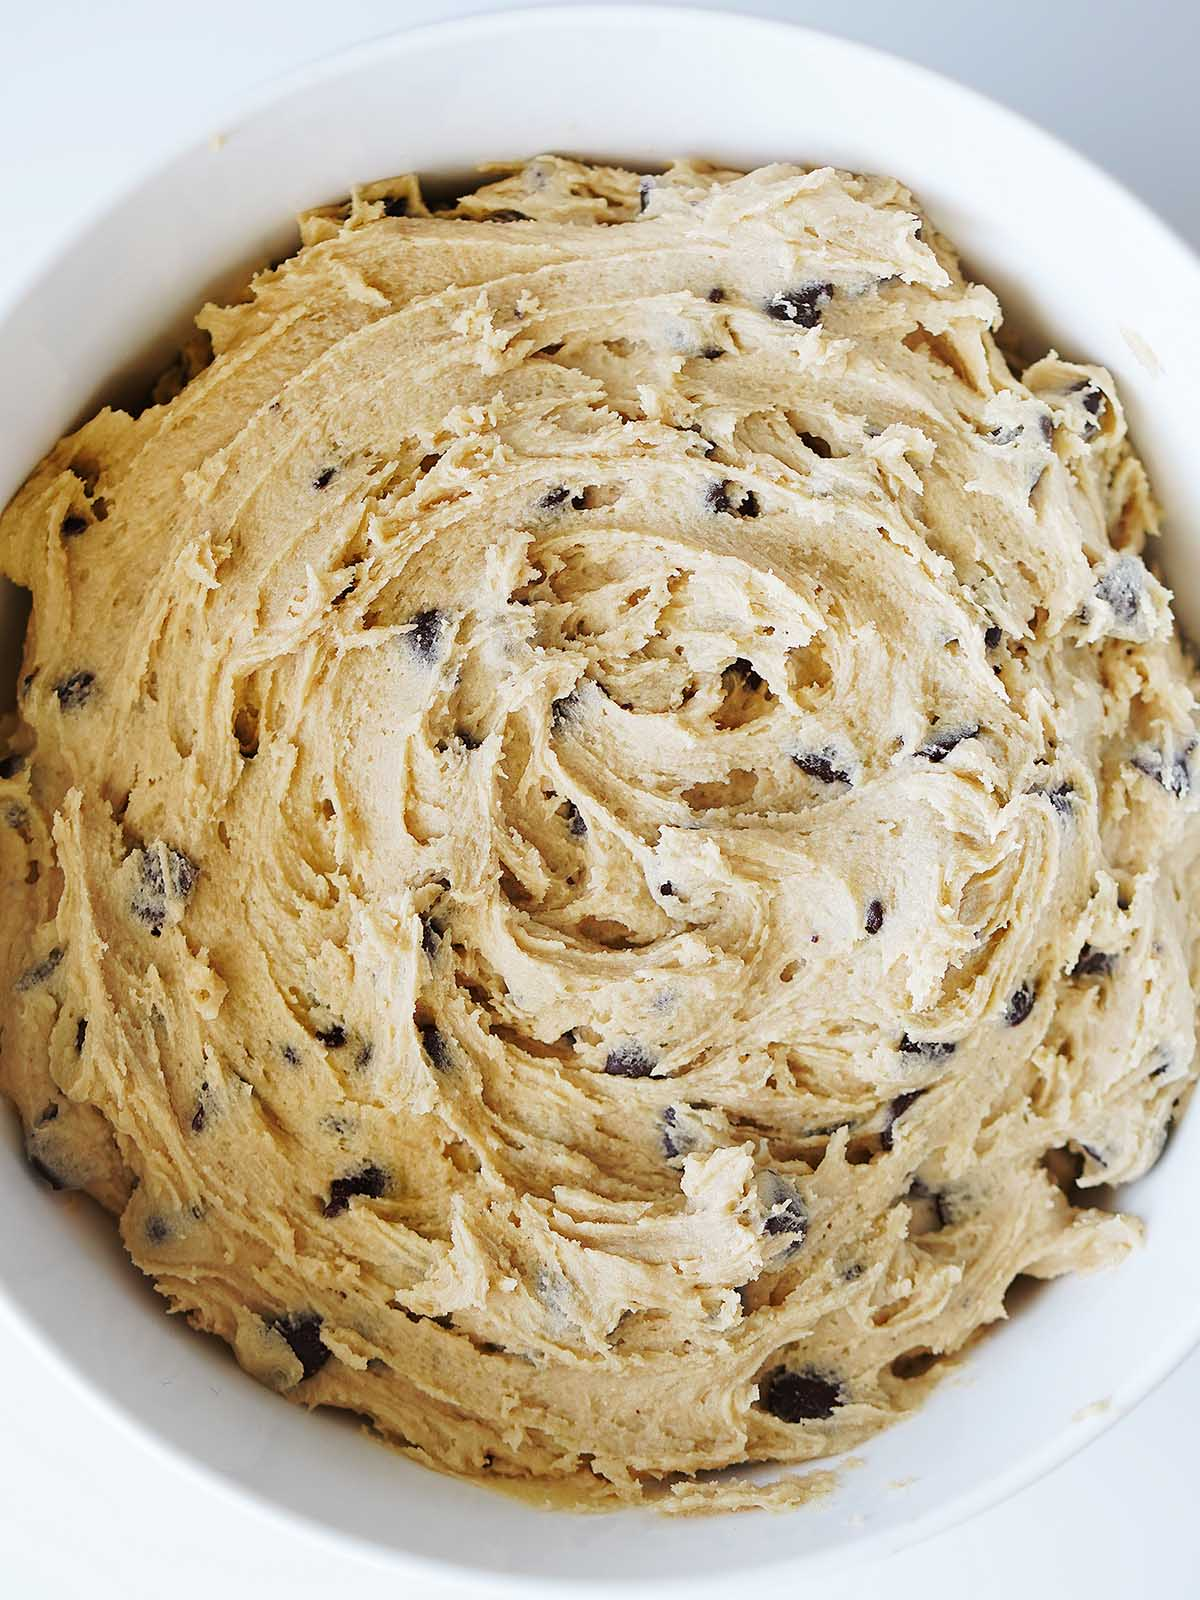 Cookie dough in a white bowl.